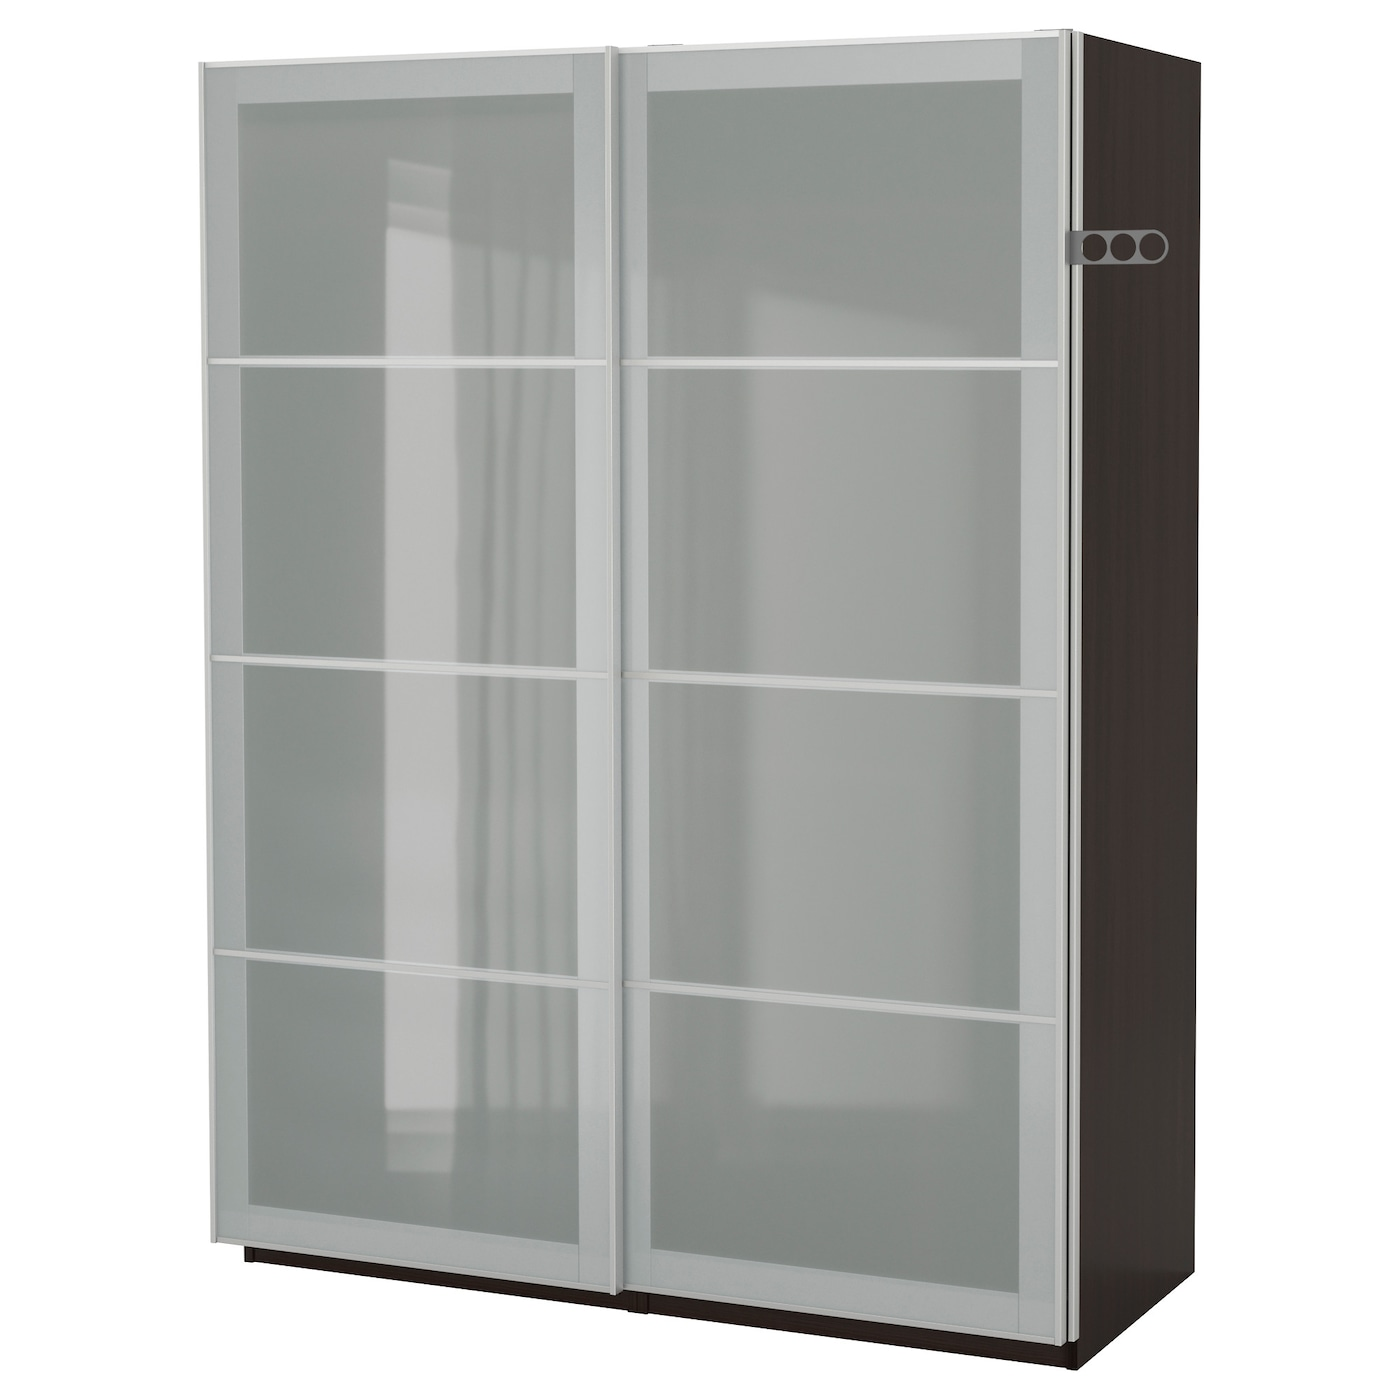 pax wardrobe black brown sekken frosted glass 150x66x201. Black Bedroom Furniture Sets. Home Design Ideas